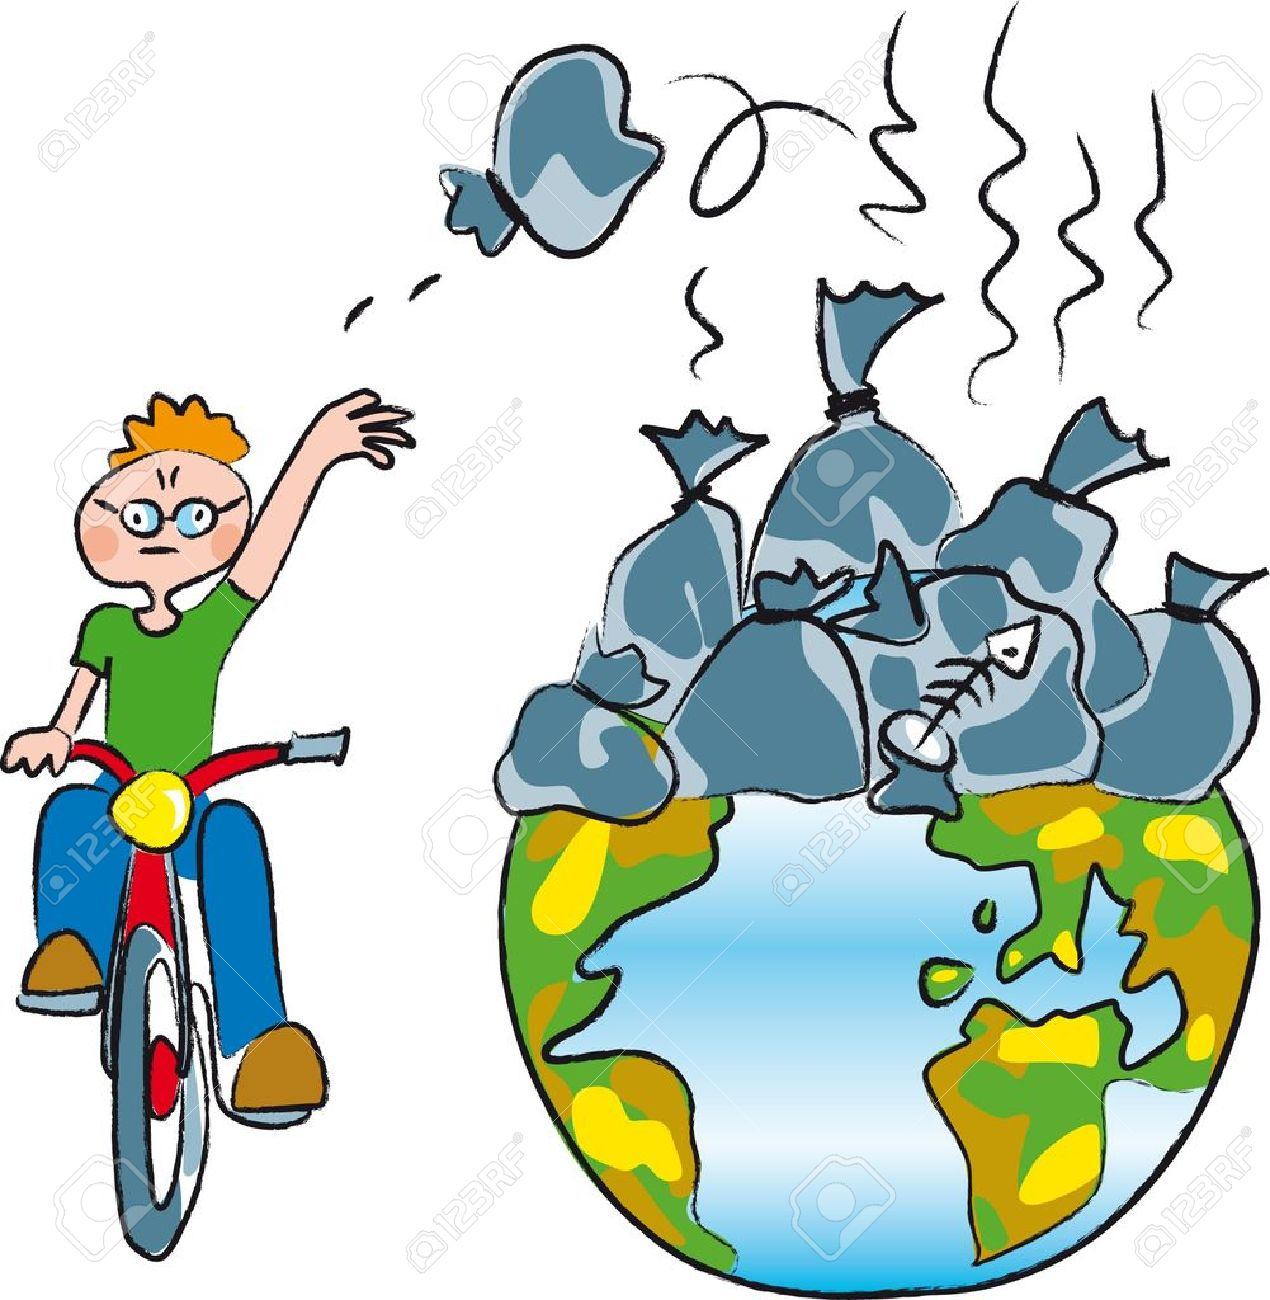 Pollution clipart sad Pollution Download Clipart Land Pollution